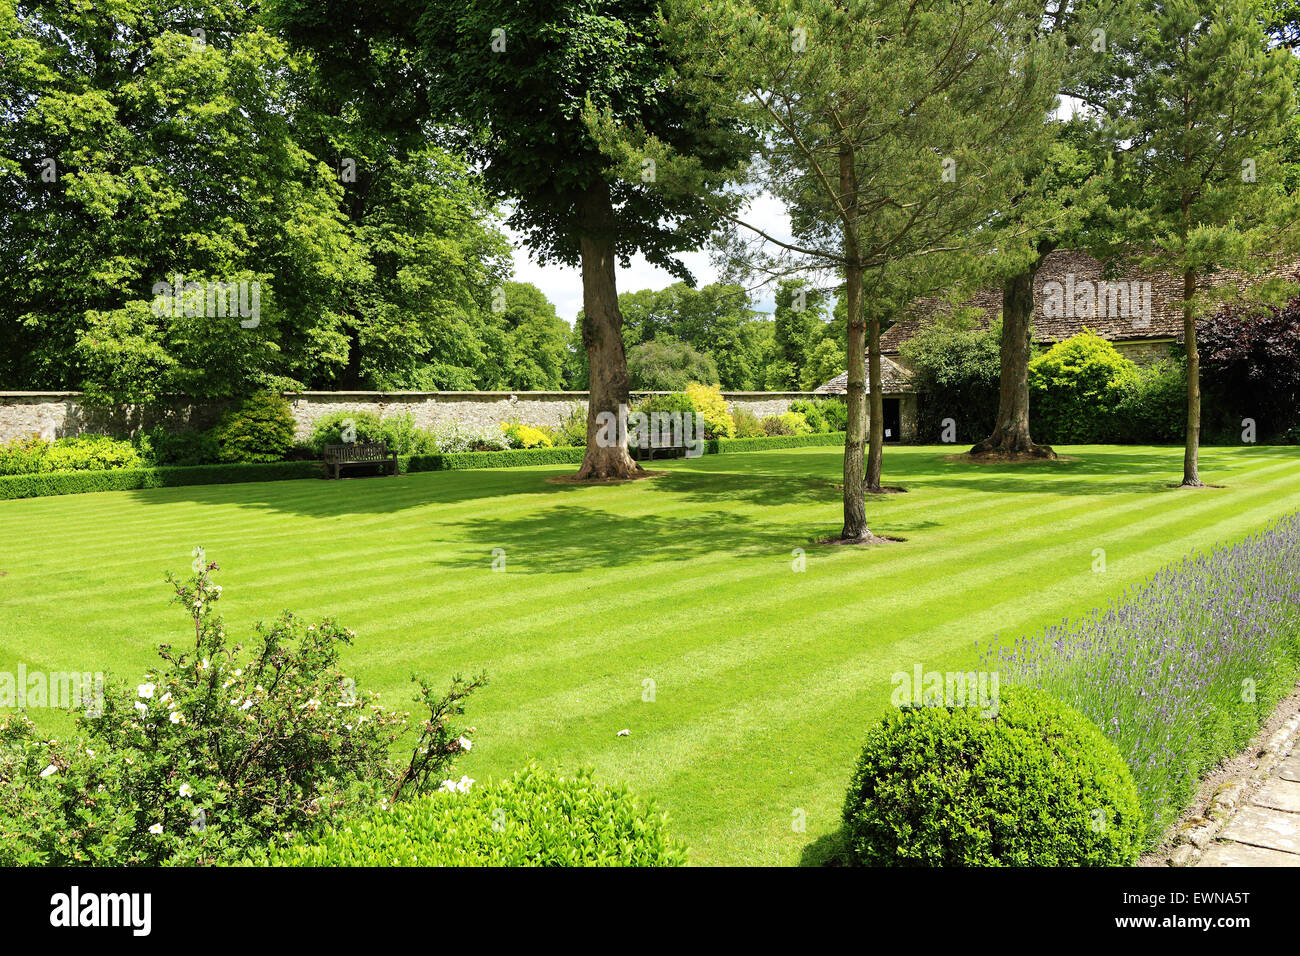 Lush lawn area in a formal English Garden with wall and lavender border - Stock Image